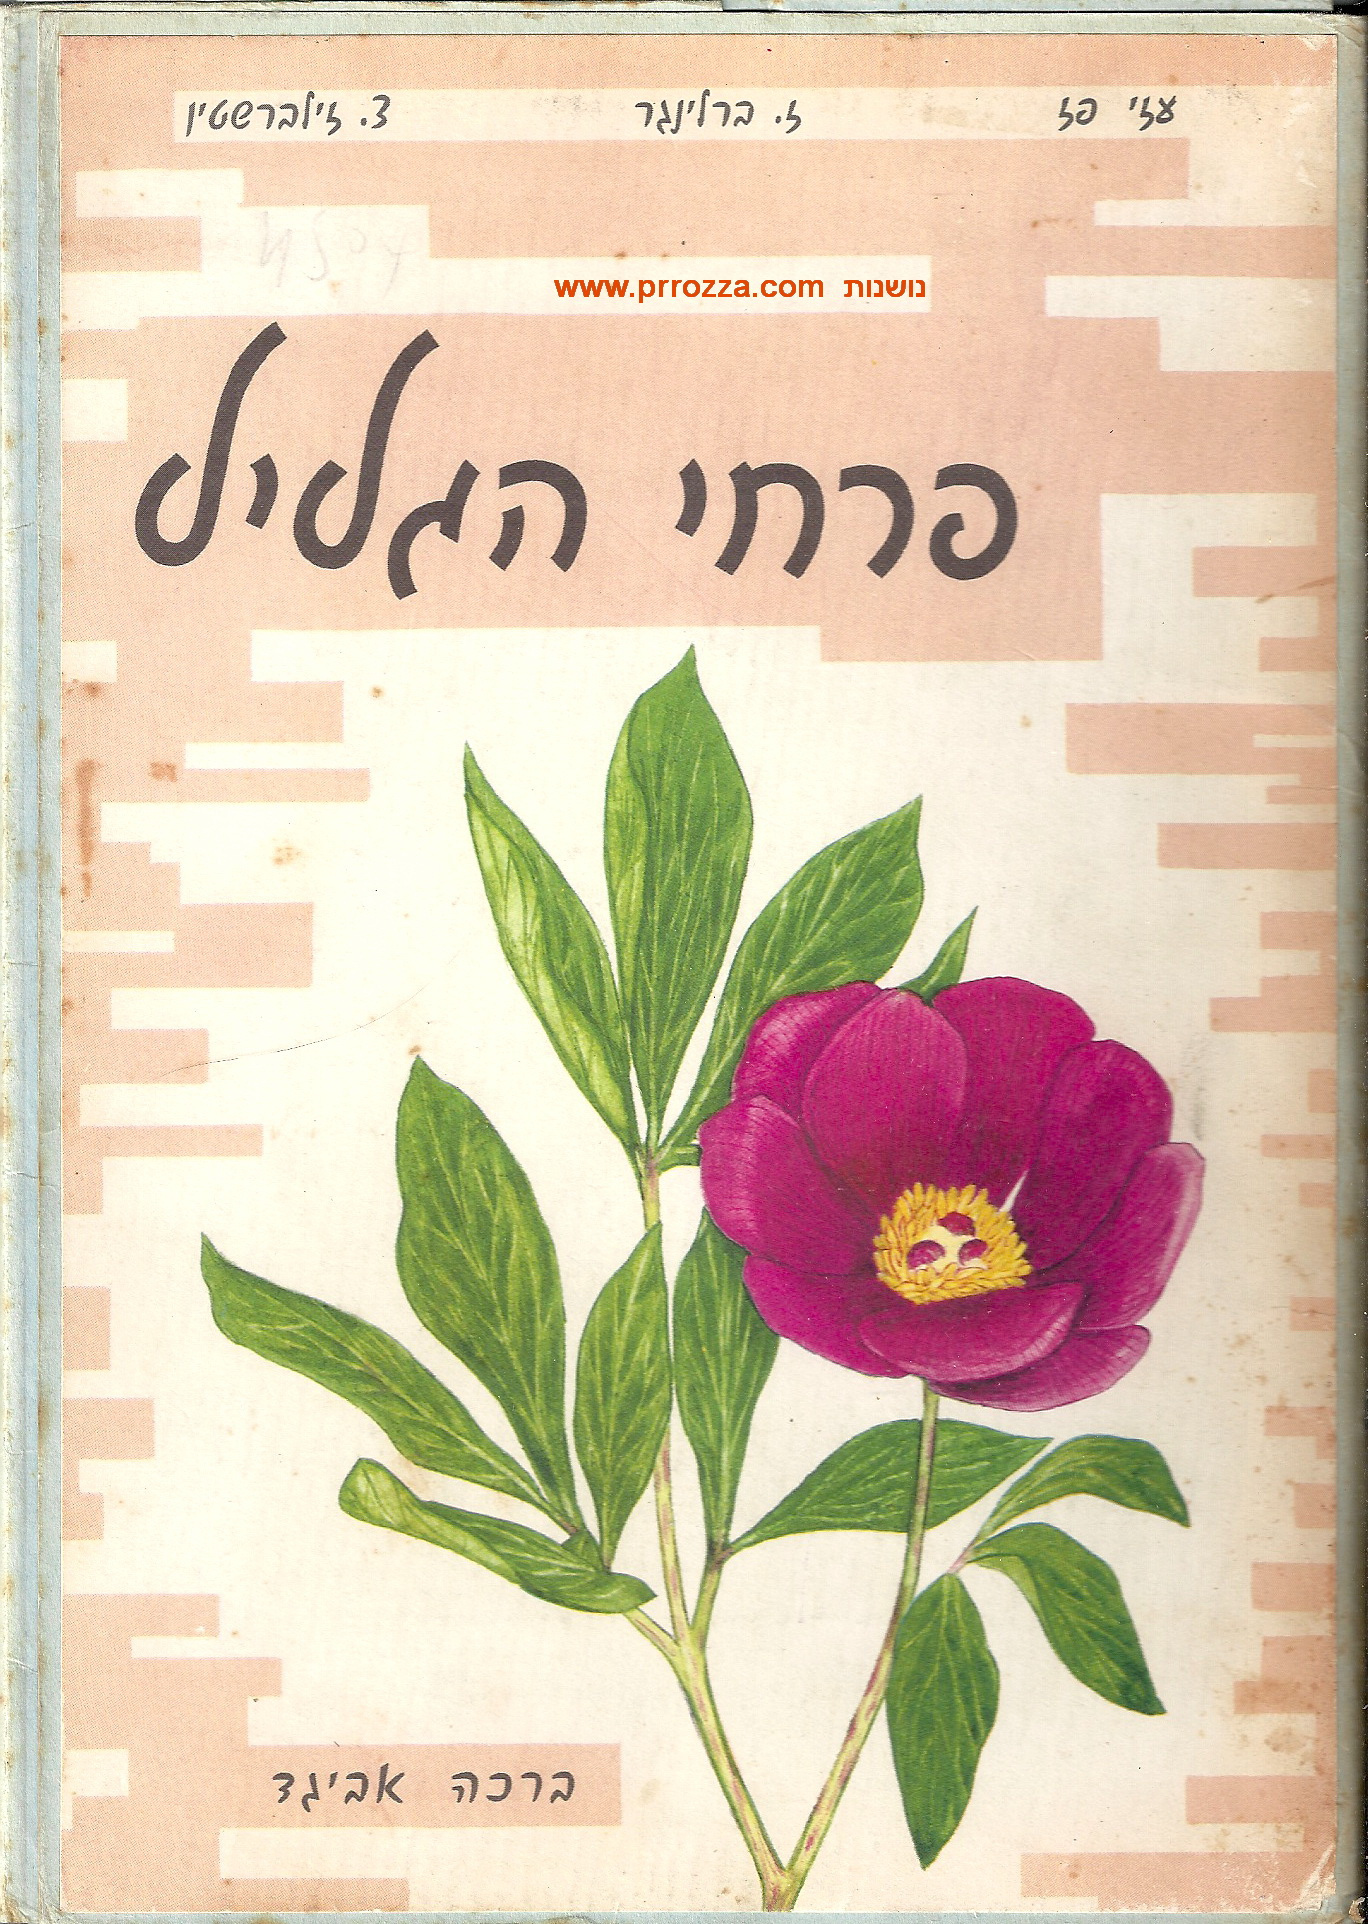 avigad-galil-cover0001-txt